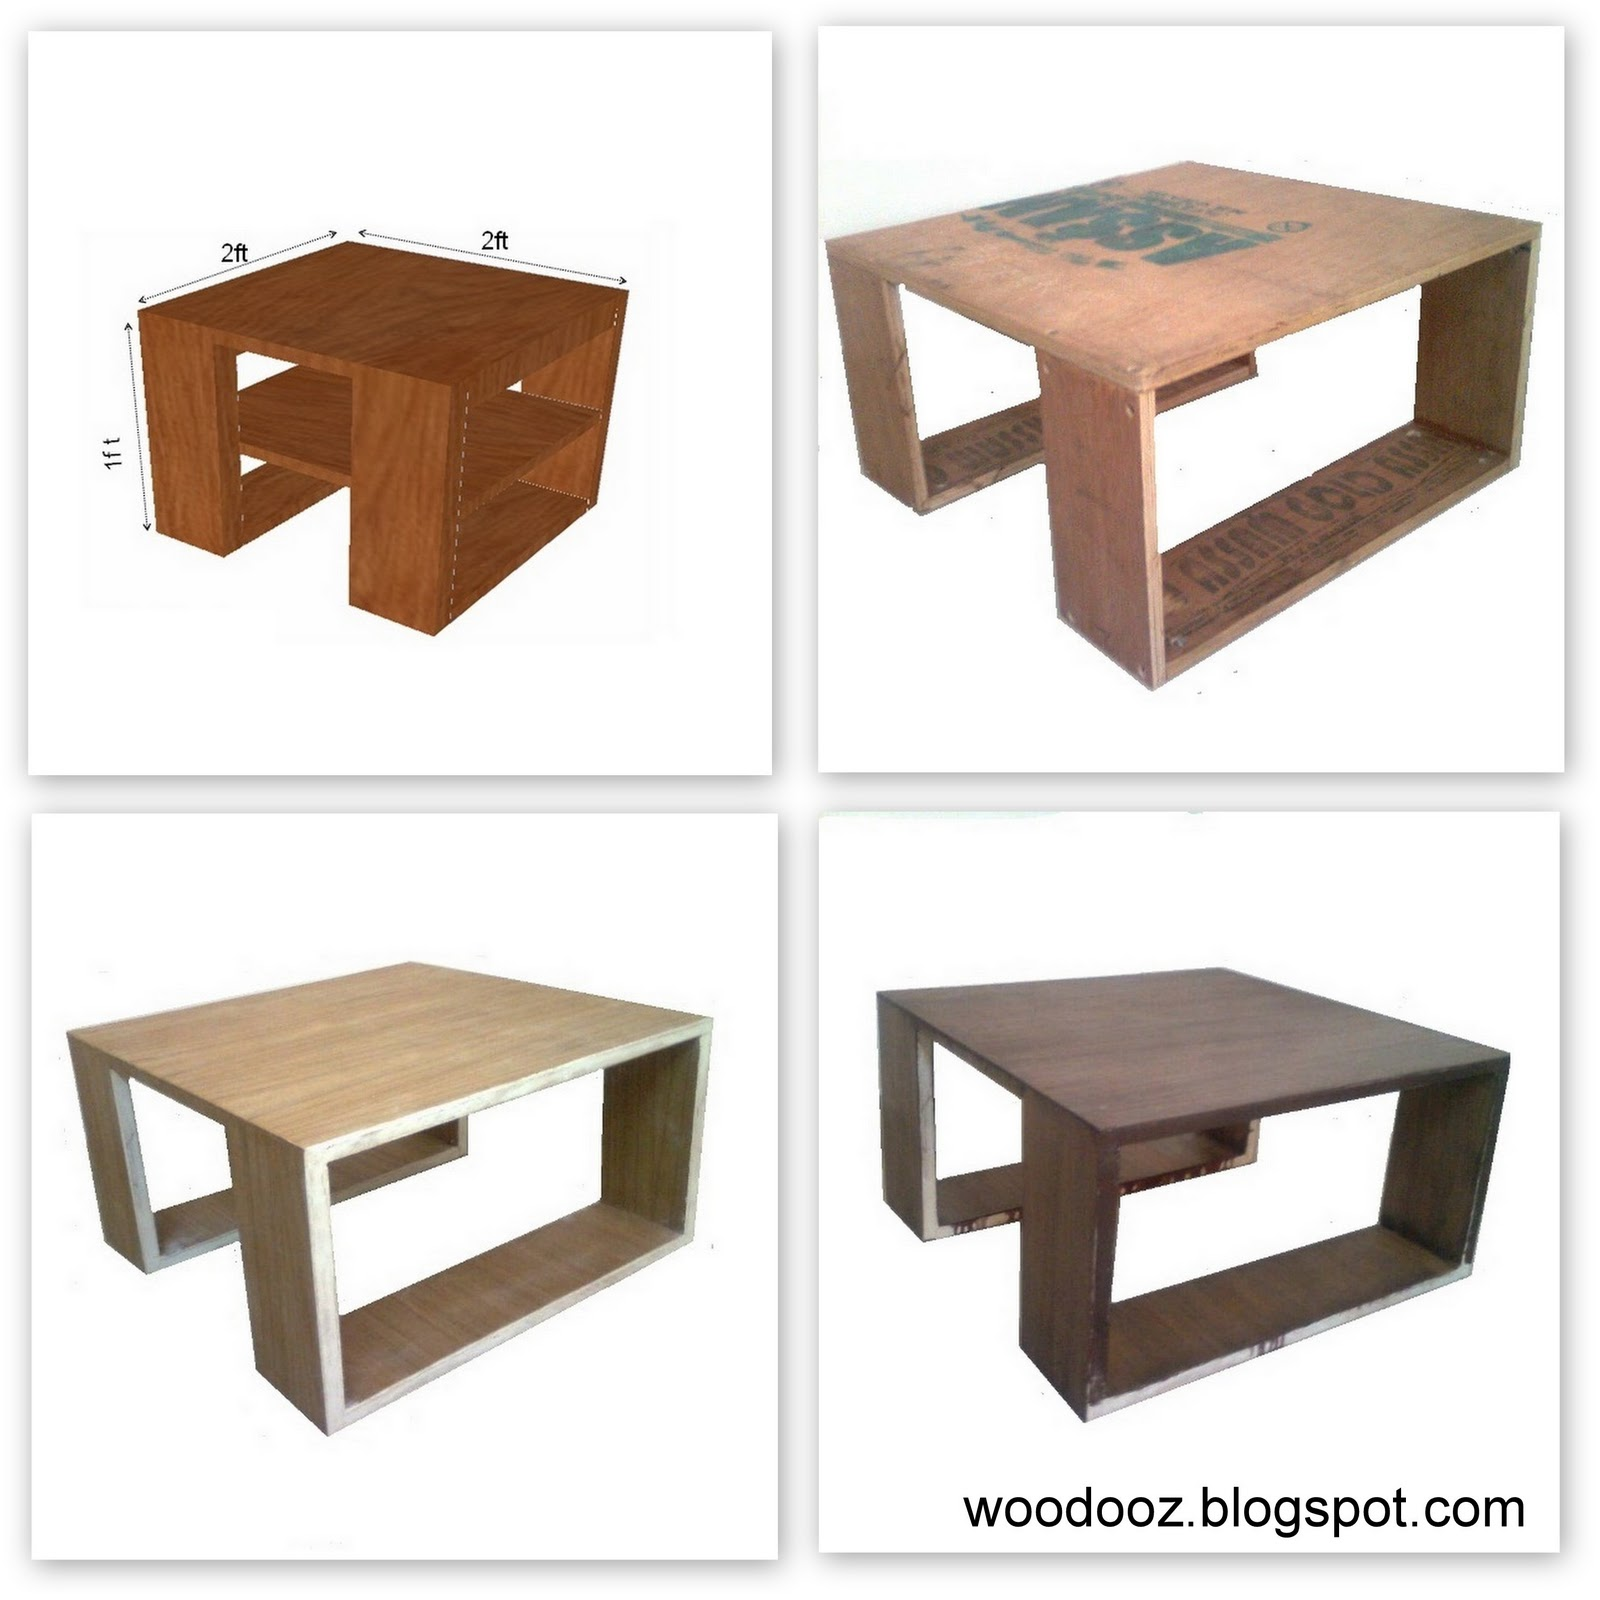 Low Center Table Coffee table Indian Woodworking DIY Arts